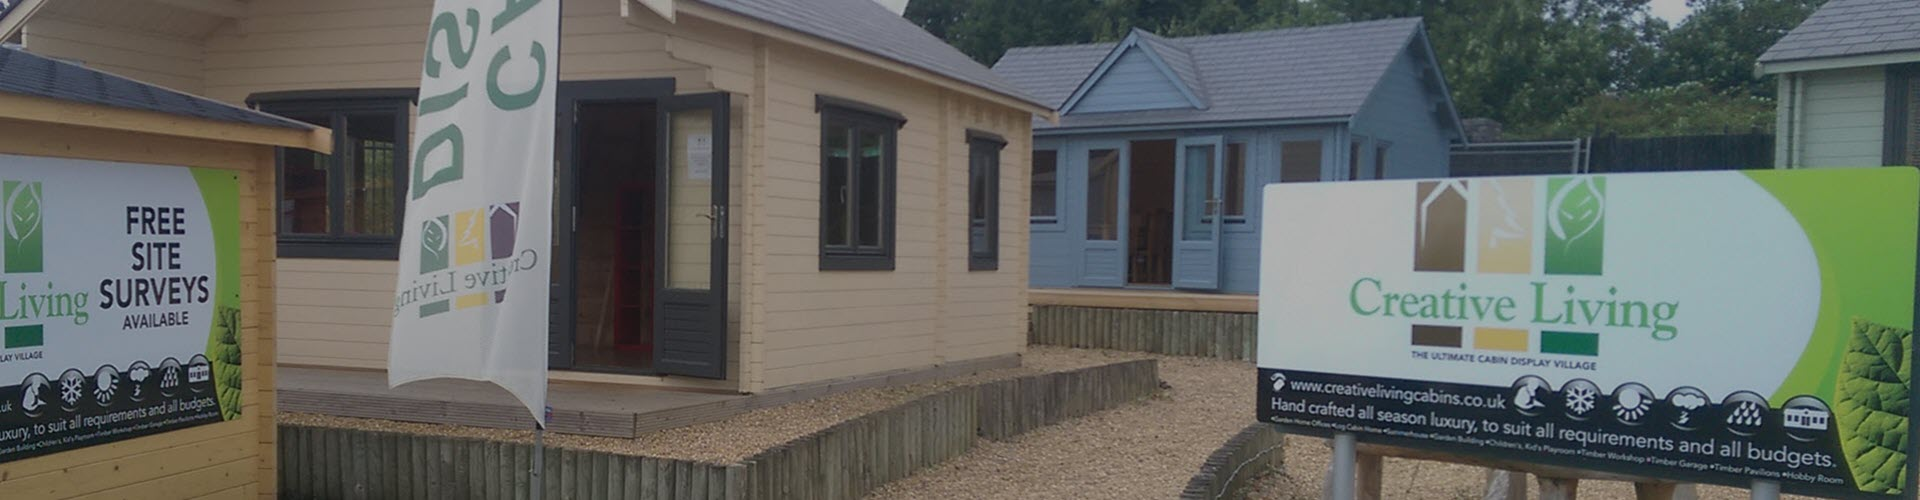 Creative Living Cabins - We Have Three Log Cabin Display Villages in Surrey